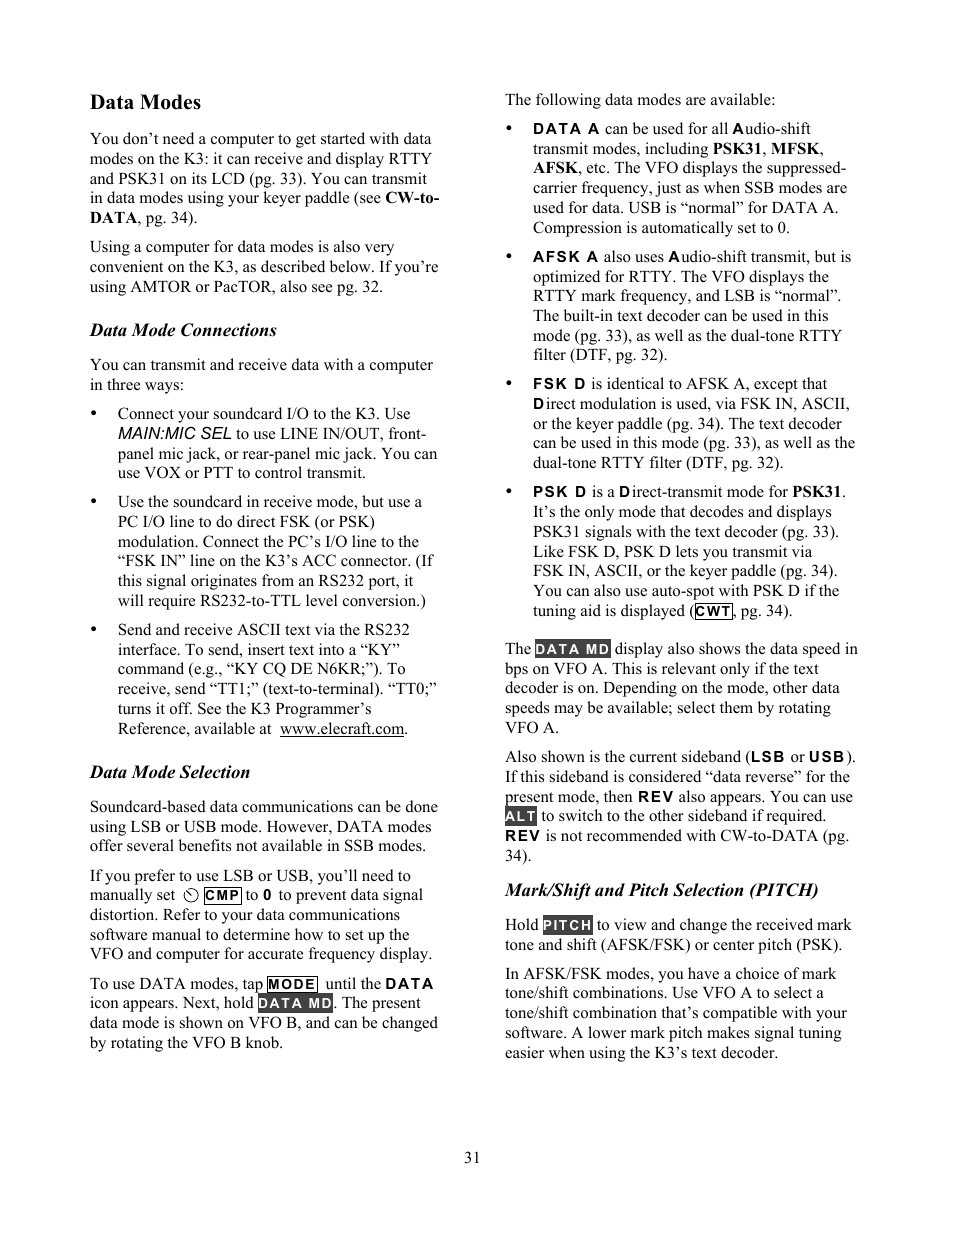 Data modes | Elecraft K3 Owner's Manual User Manual | Page 31 / 83